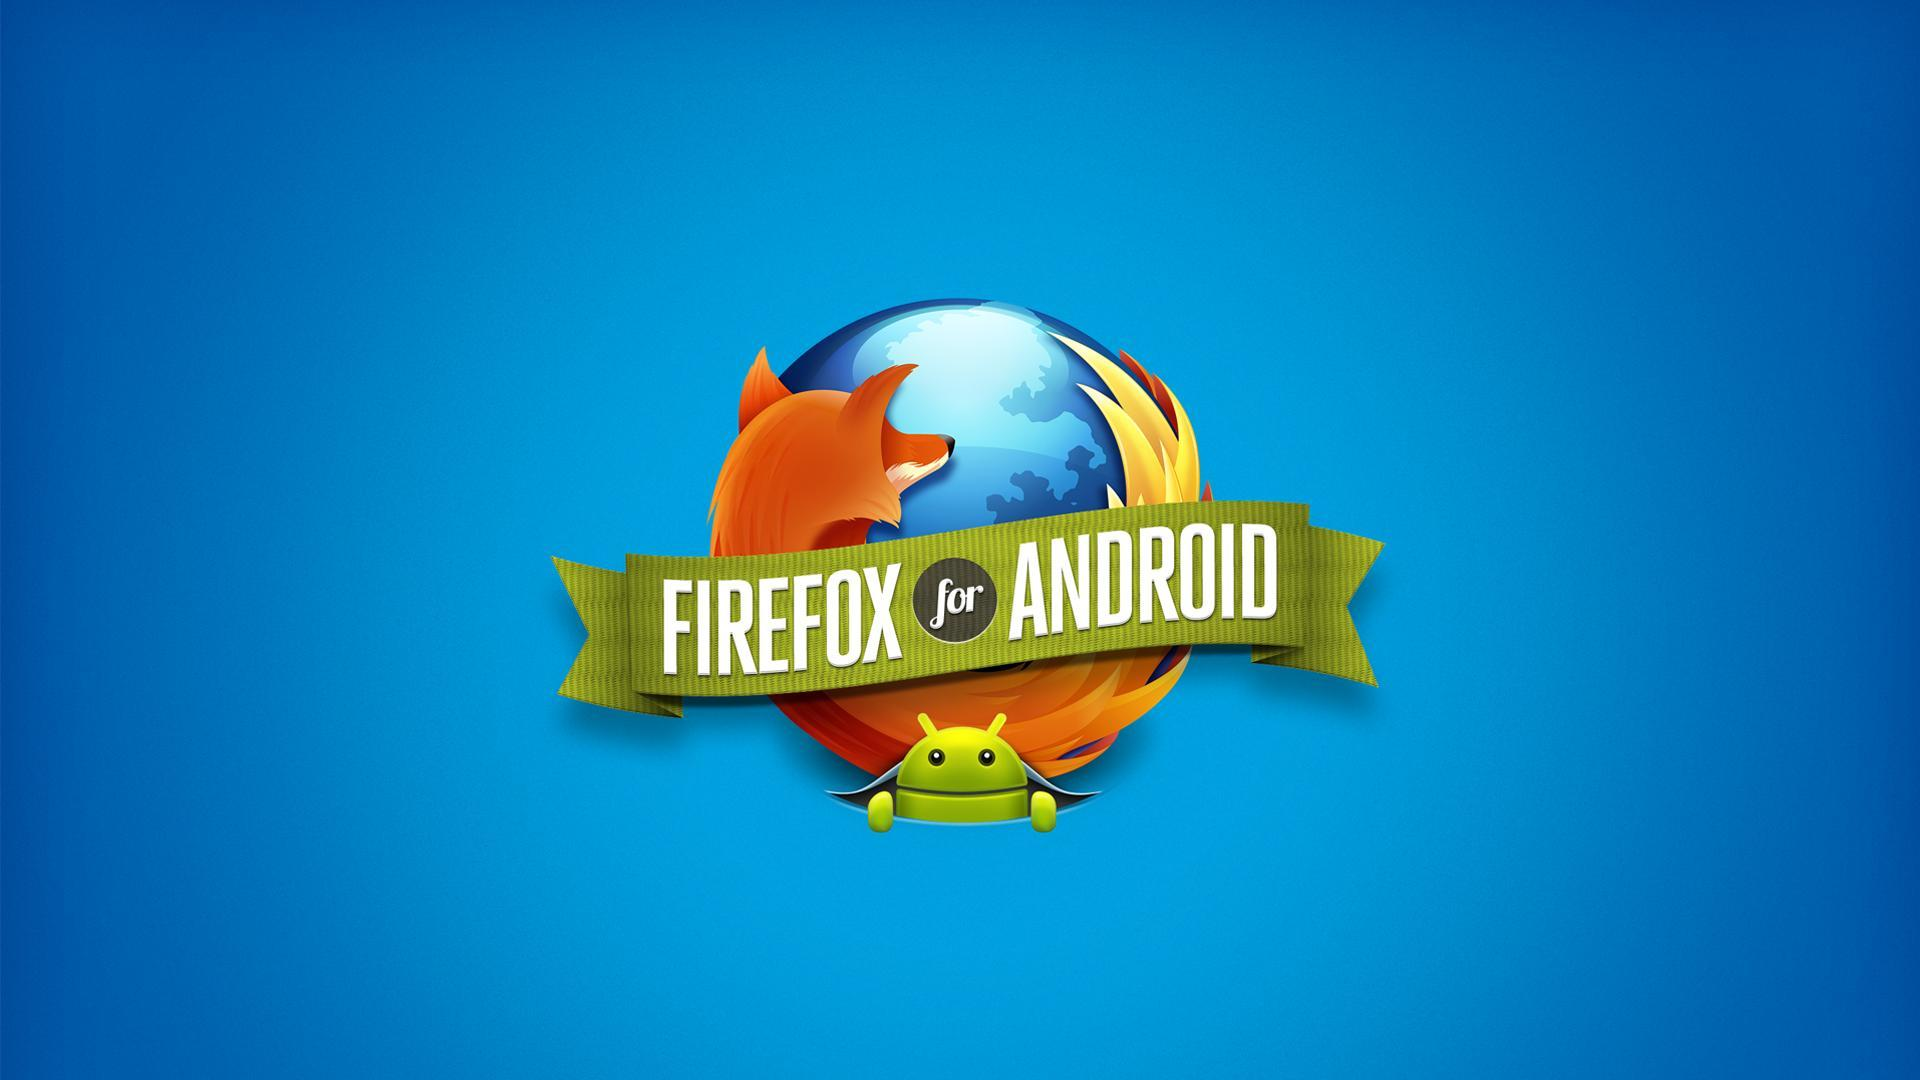 Mozilla Firefox Wallpaper Themes For Android 3378